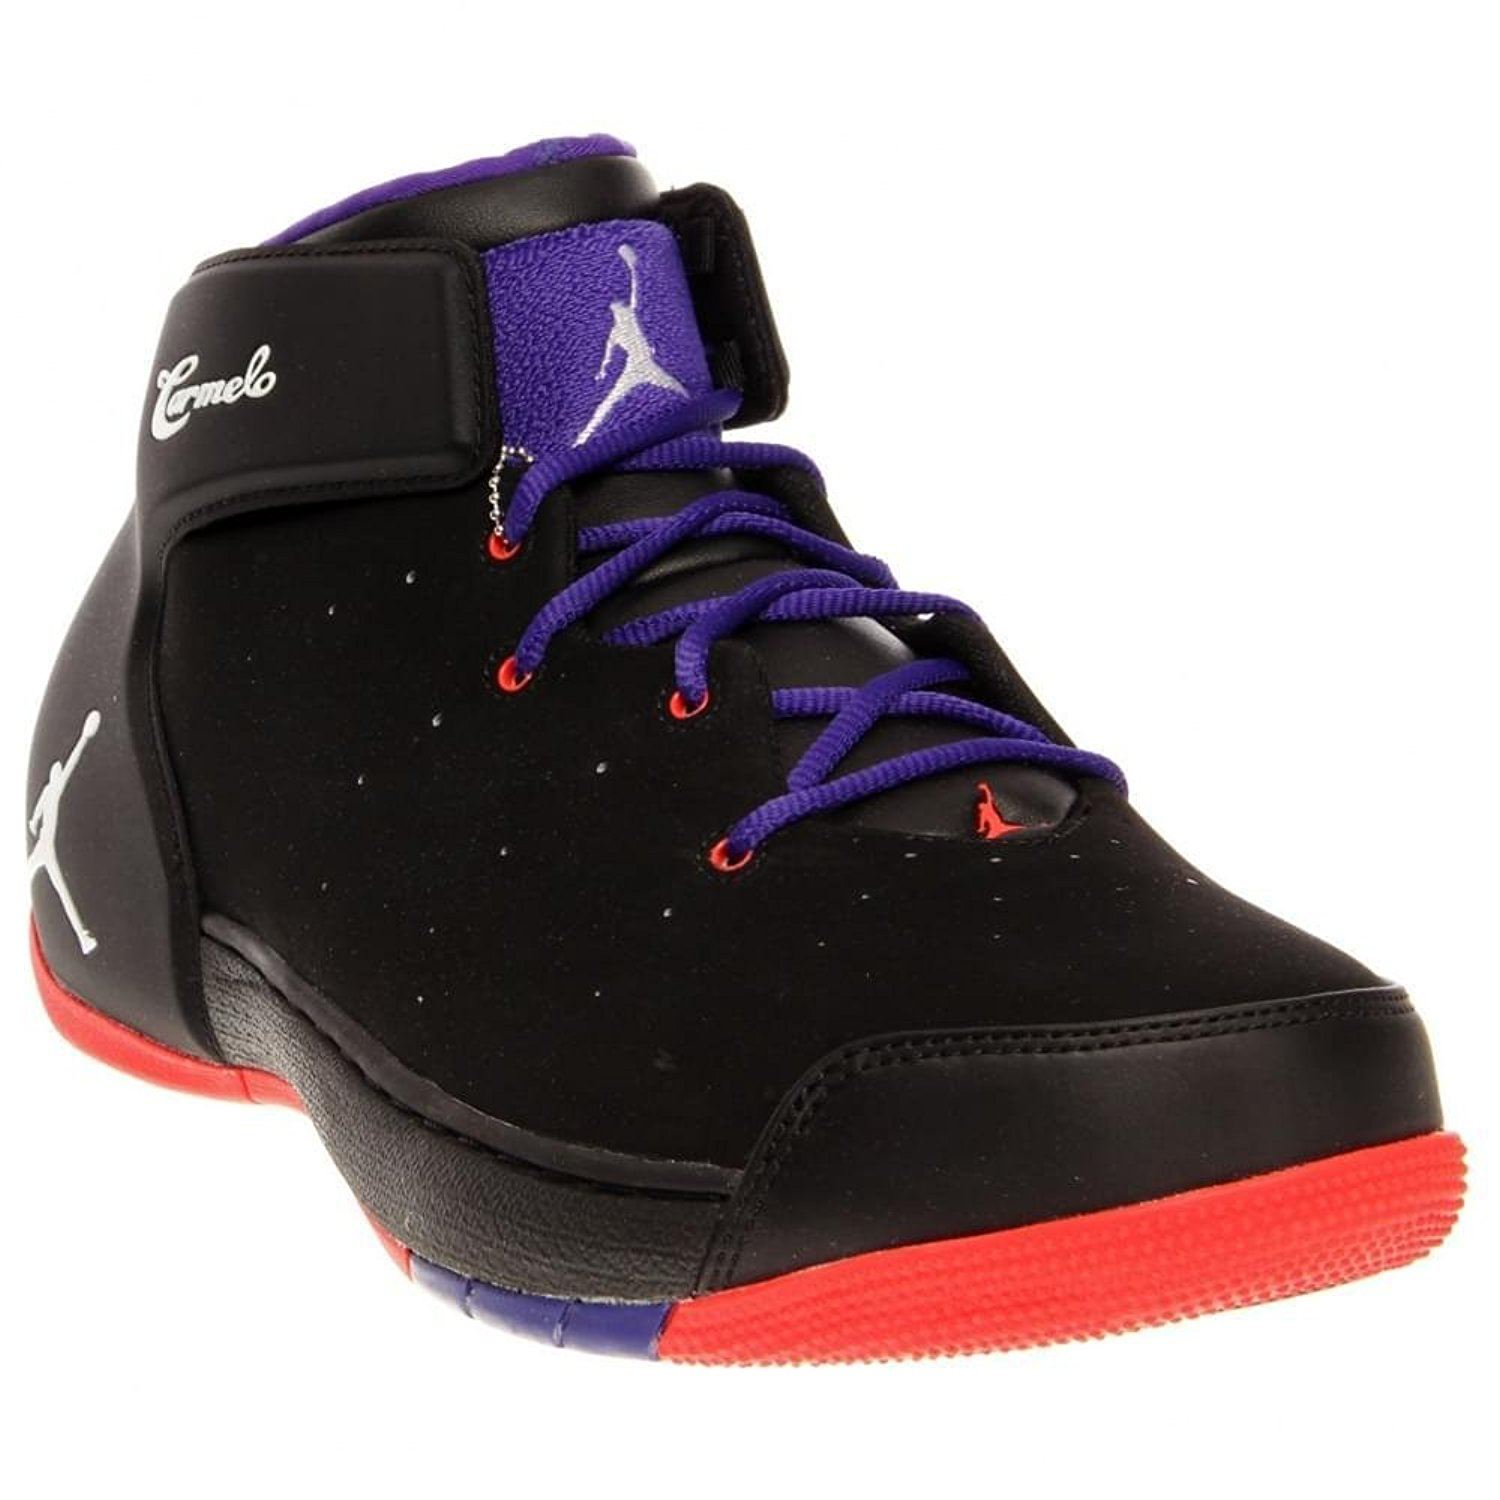 Nike Air Jordan Melo 1.5 Mens Basketball Shoes